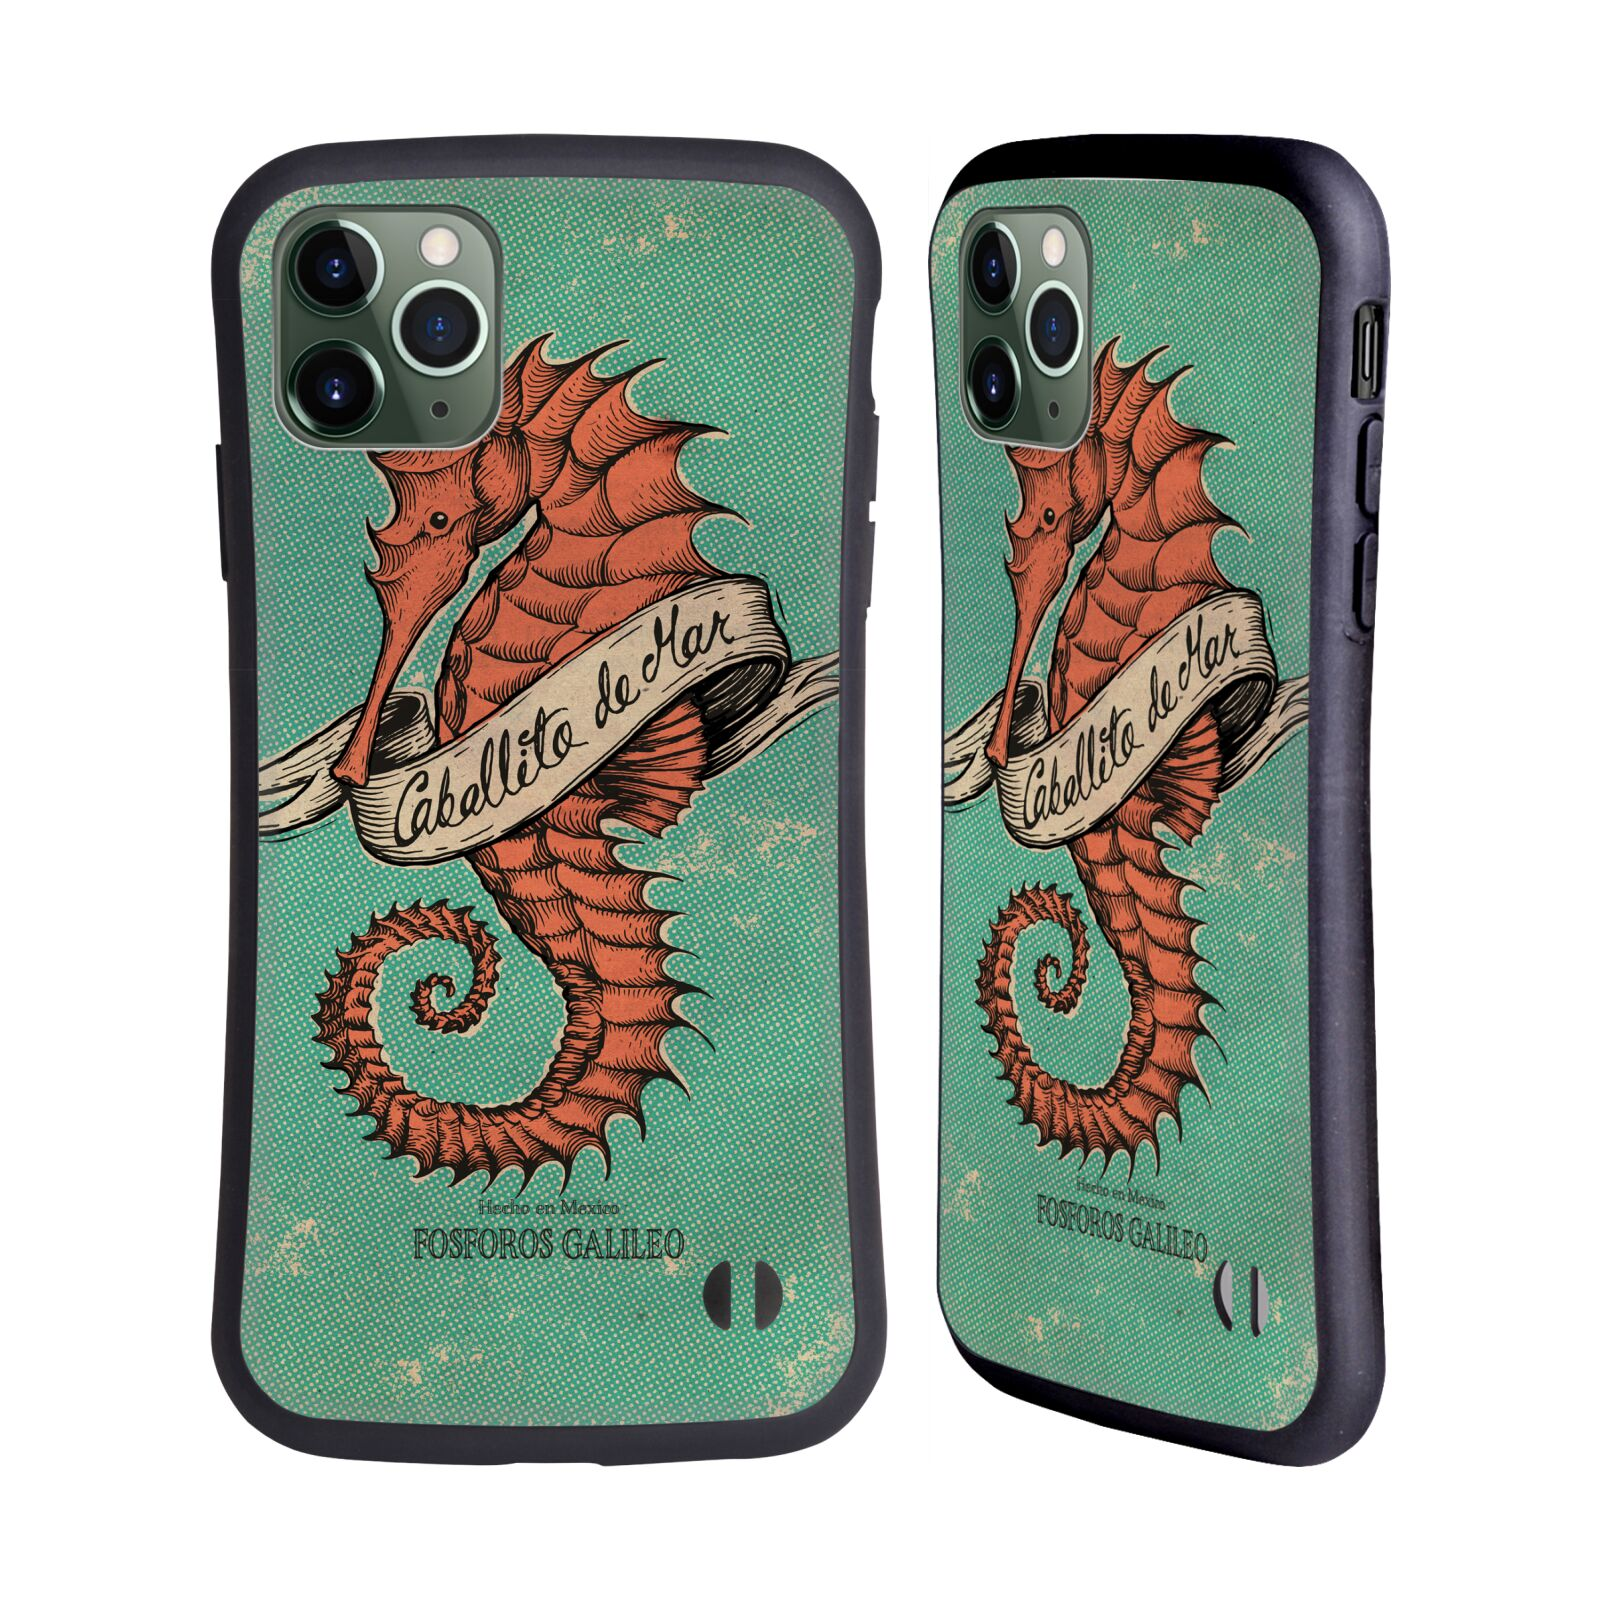 Official Fosforos Galileo Diseños Caballito De Mar Hybrid Case for Apple iPhone 11 Pro Max